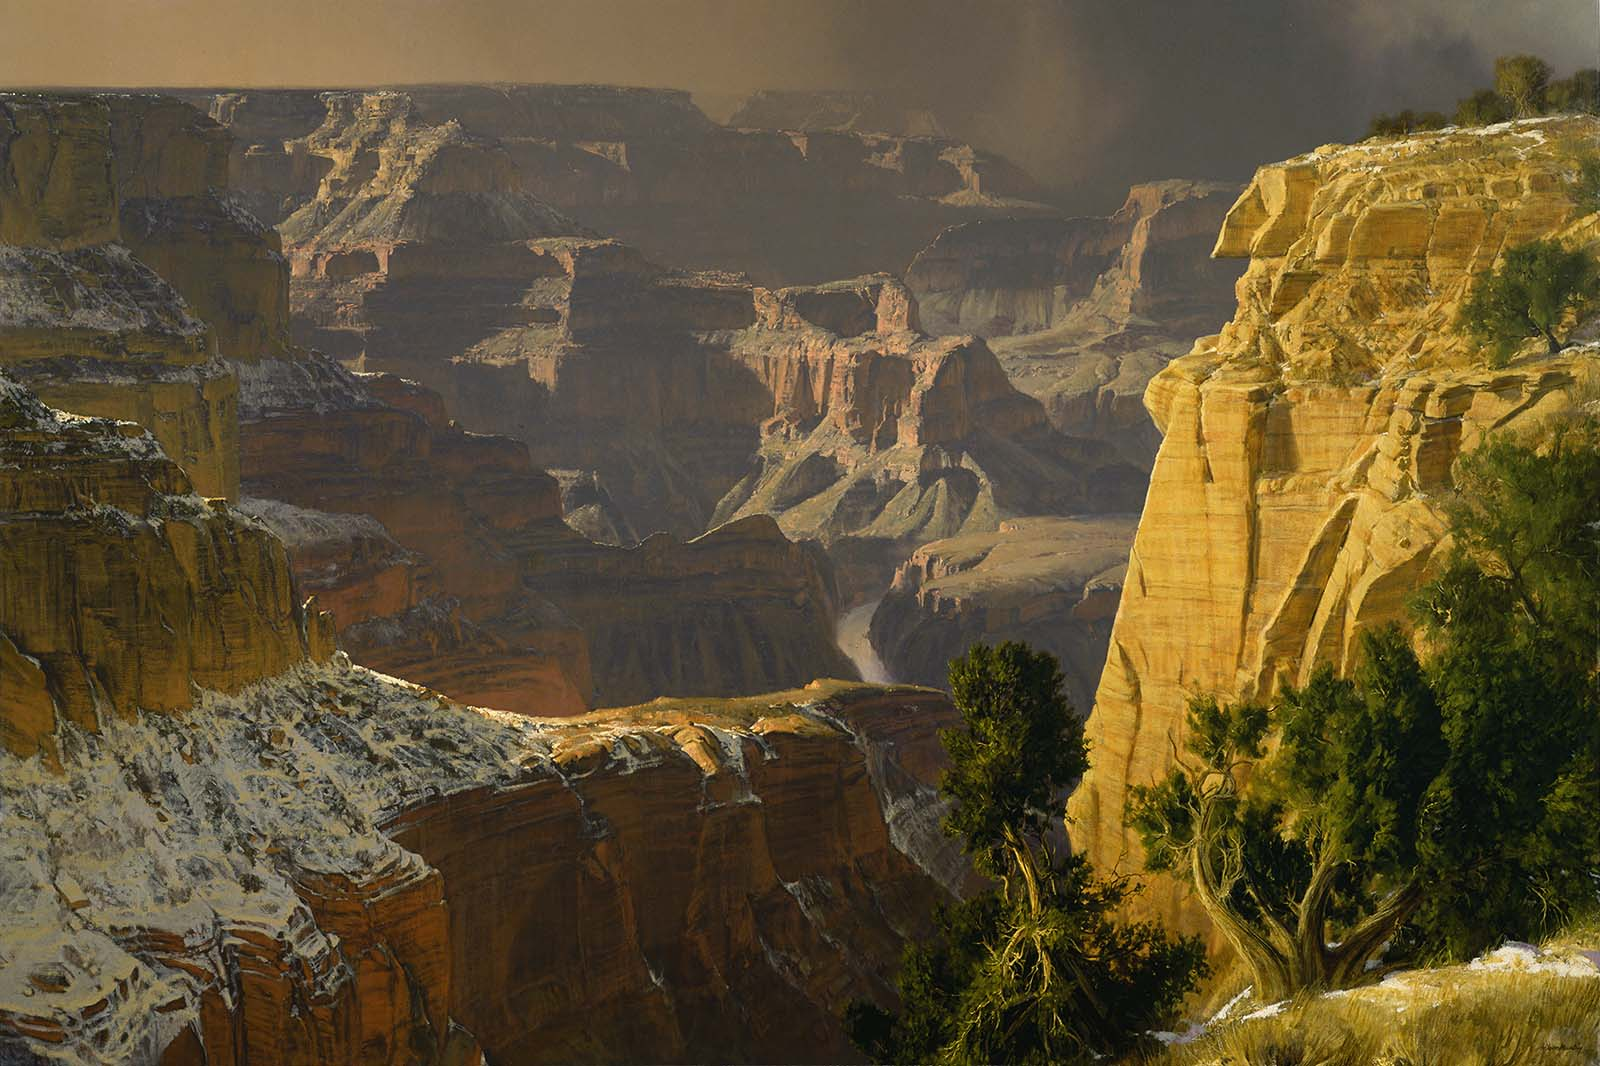 """Wilson Hurley (1924-2008). """"View from the Mohave Wall,"""" 1976. Oil on canvas, 60.25 x 90.25 inches. 6.76"""